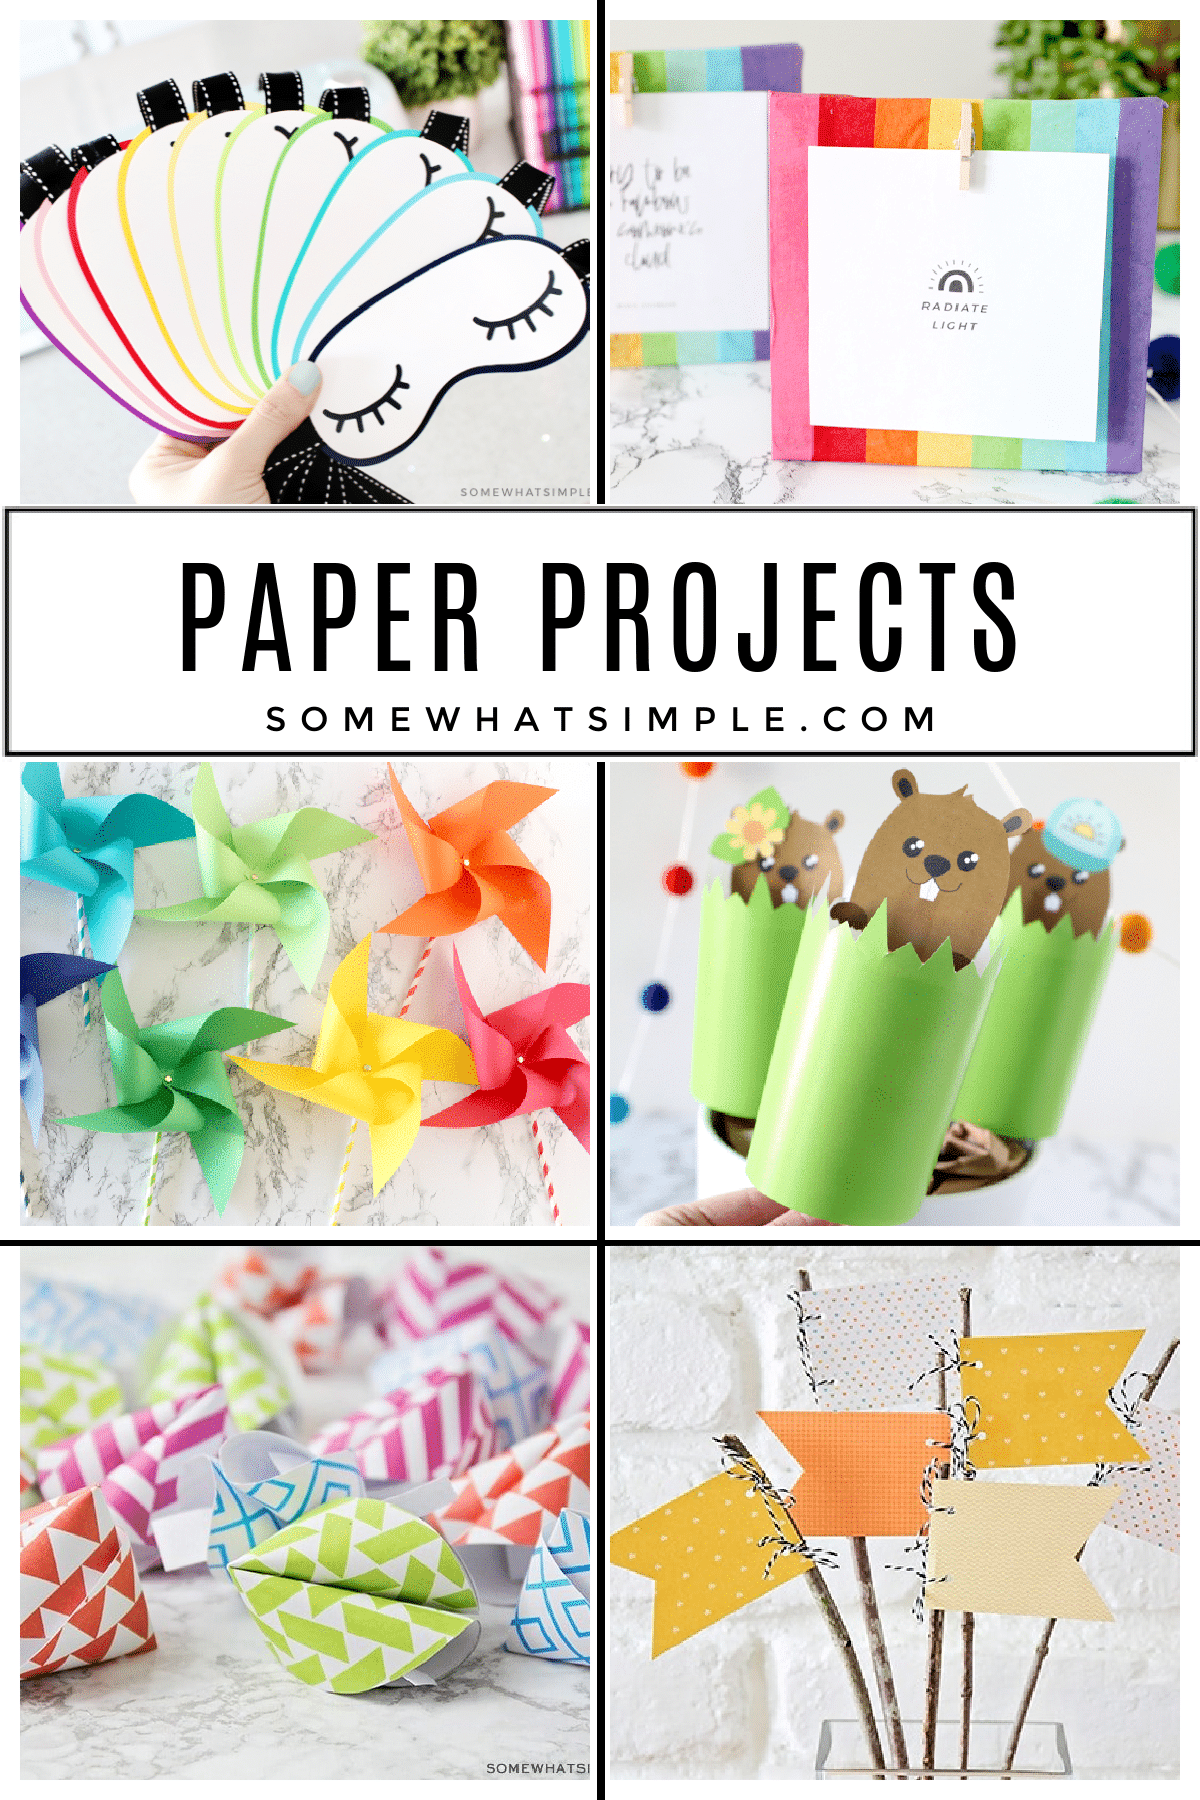 50 simple projects you can make with scrapbook paper, construction paper, tissue paper, scratch paper, and more!! Grab your stash and let's get creative! via @somewhatsimple